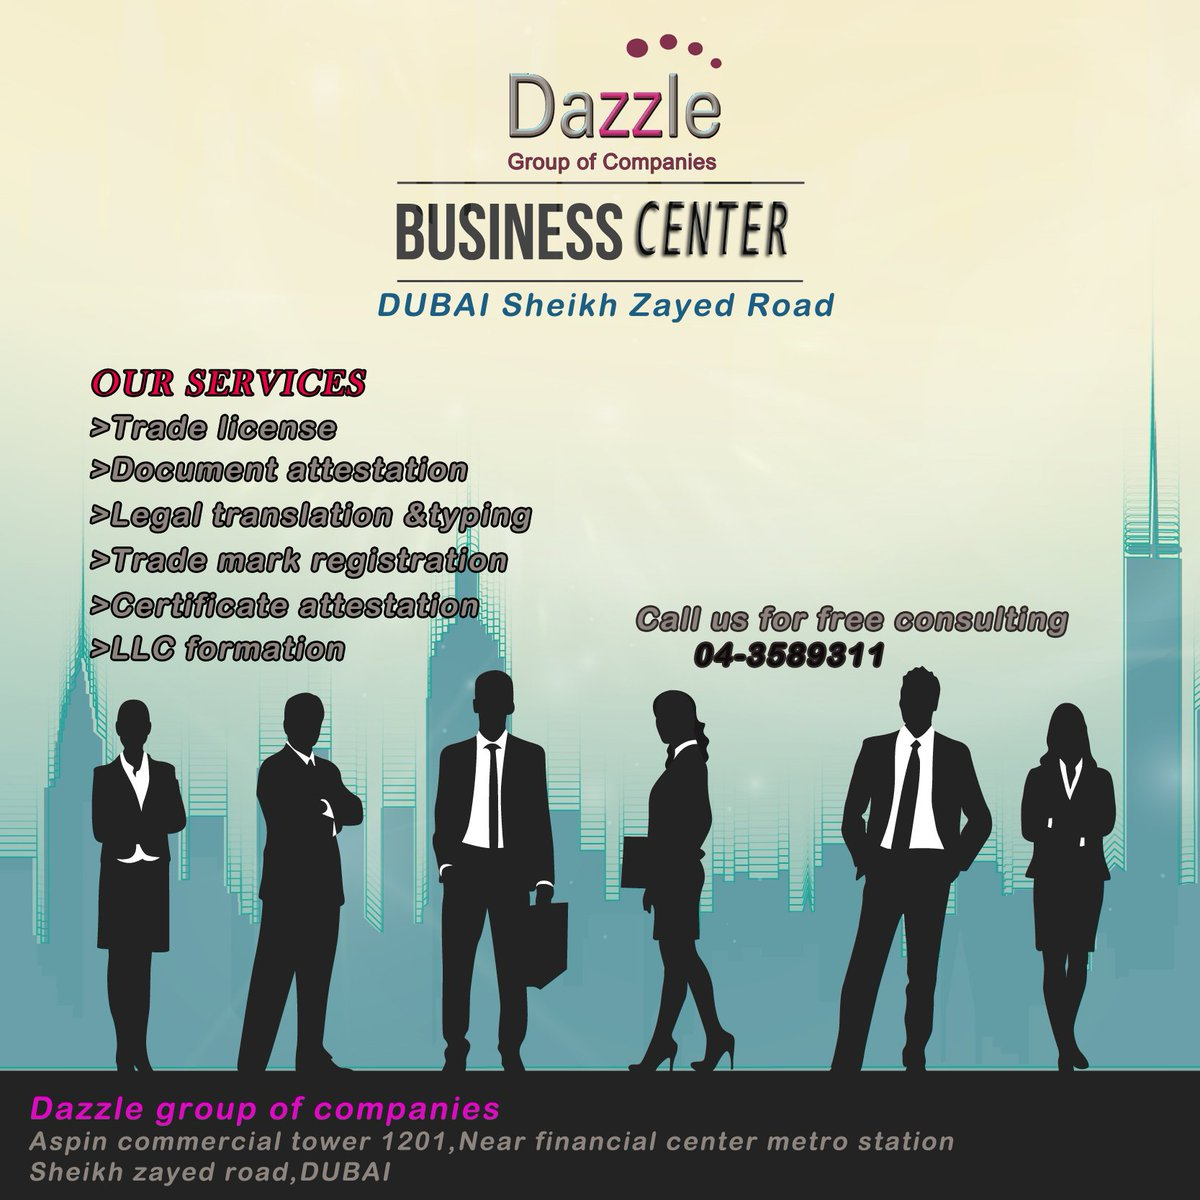 Dazzle Group on Twitter: